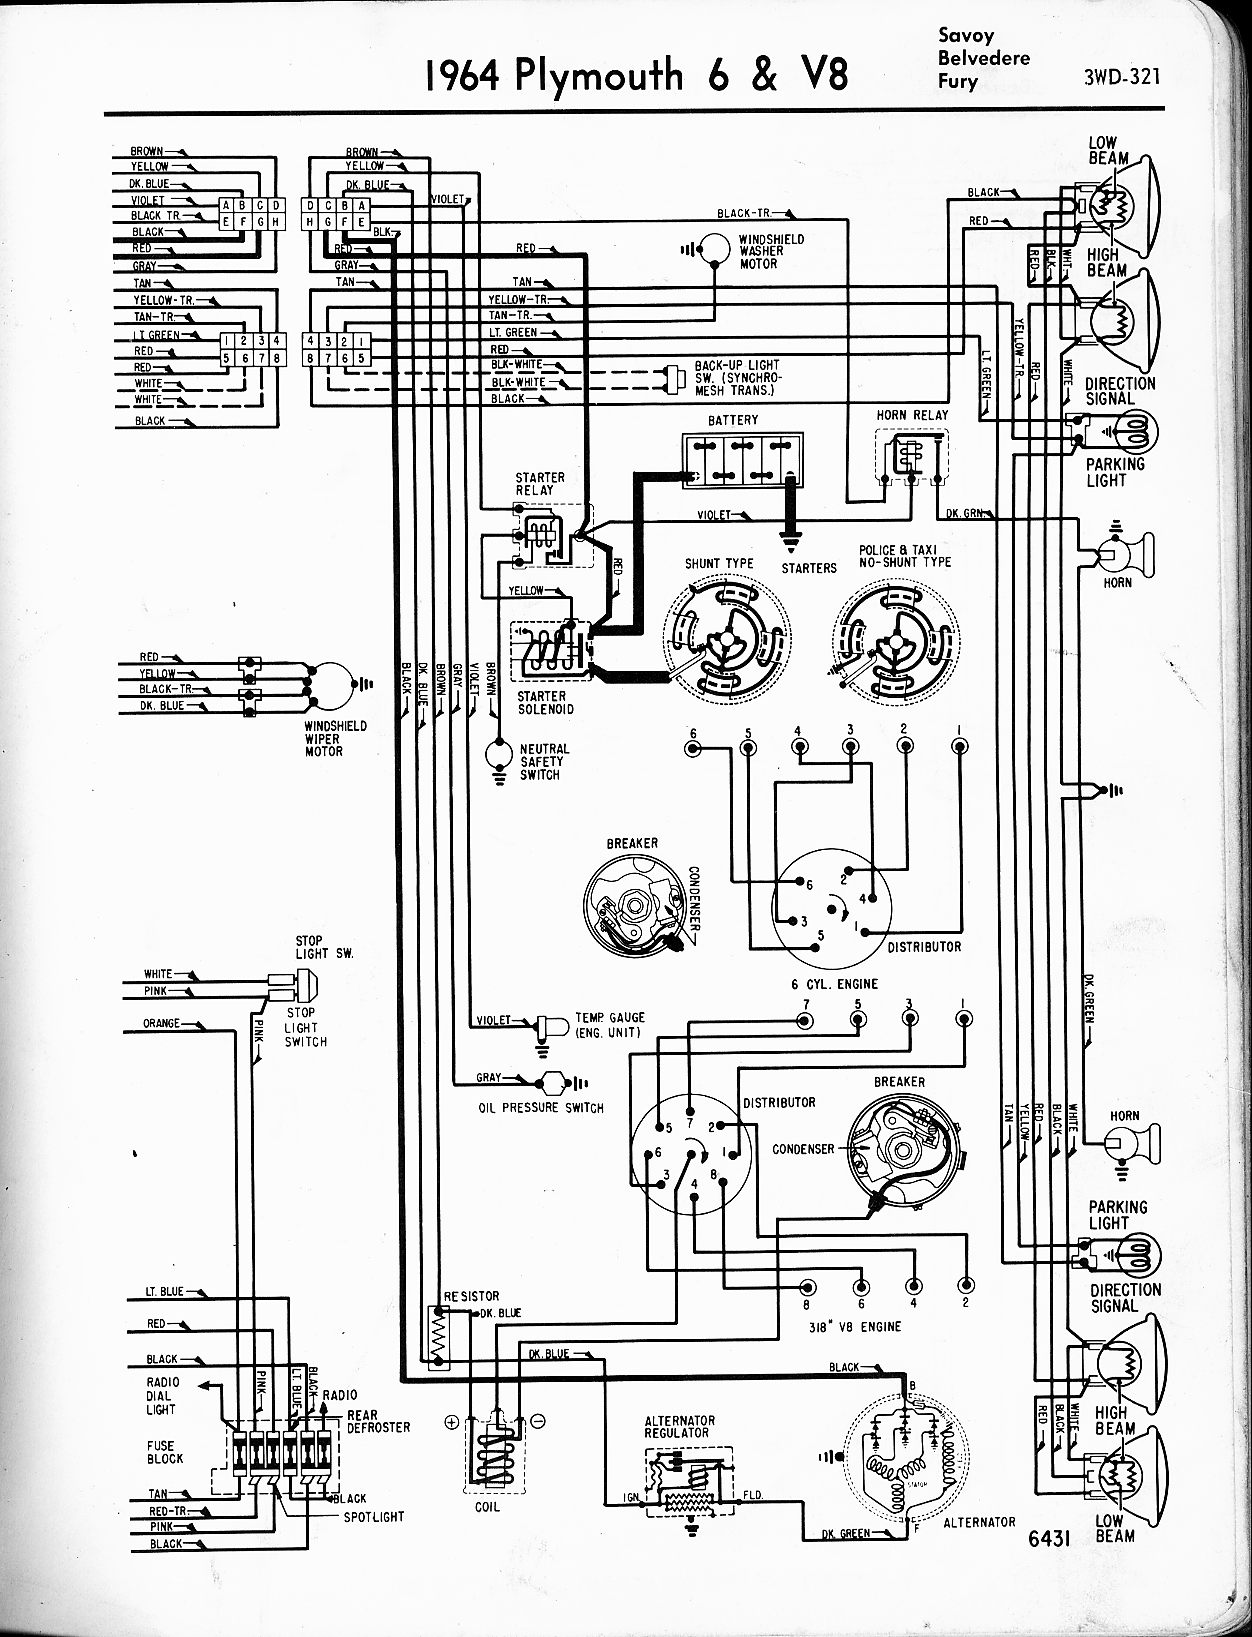 1964 dodge d100 wiring diagram wiring librarydodge 225 slant six ignition wiring diagram 1964 dodge d100 wiring diagram